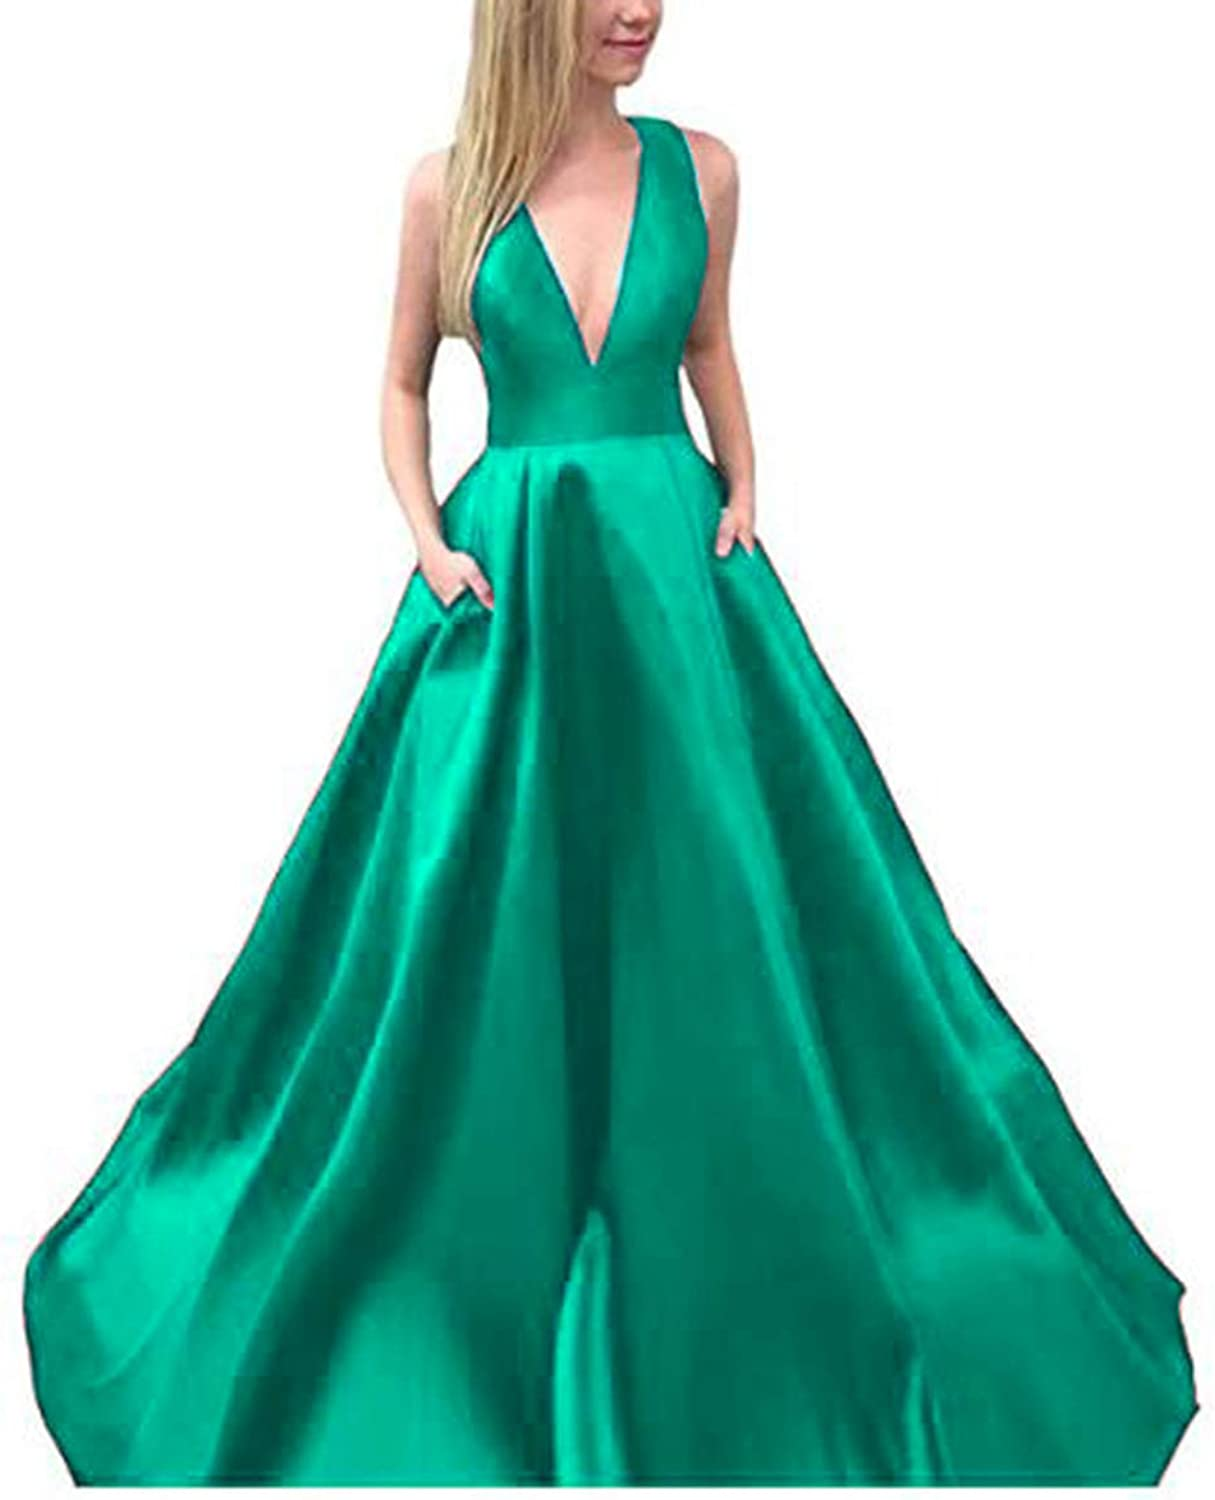 Alilith.Z Sexy V Neck Satin Prom Dresses A Line Party Gowns Long Formal Dresses for Women Evening with Pockets